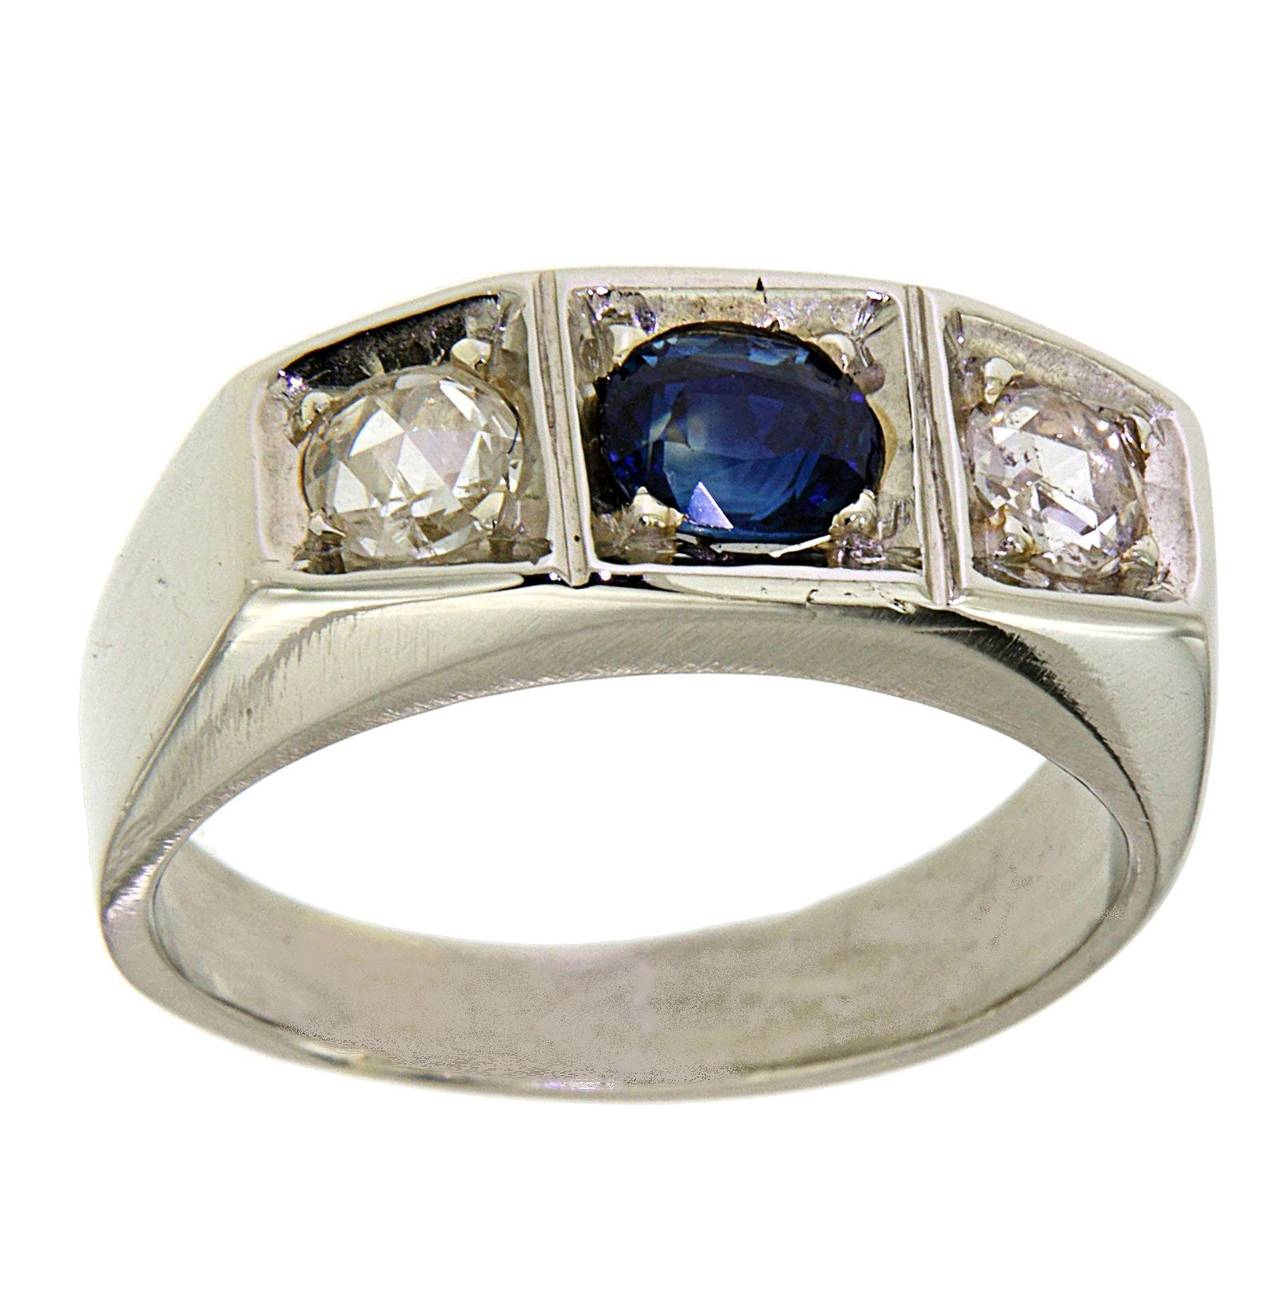 This handsome antique gents White 18k Gold Ring is set with a Sapphires approximately 1.00 ctw and 2 Diamonds Rose cut approximately 0.20 ctw. The ring is currently a size 8 and can easily be re-sized.